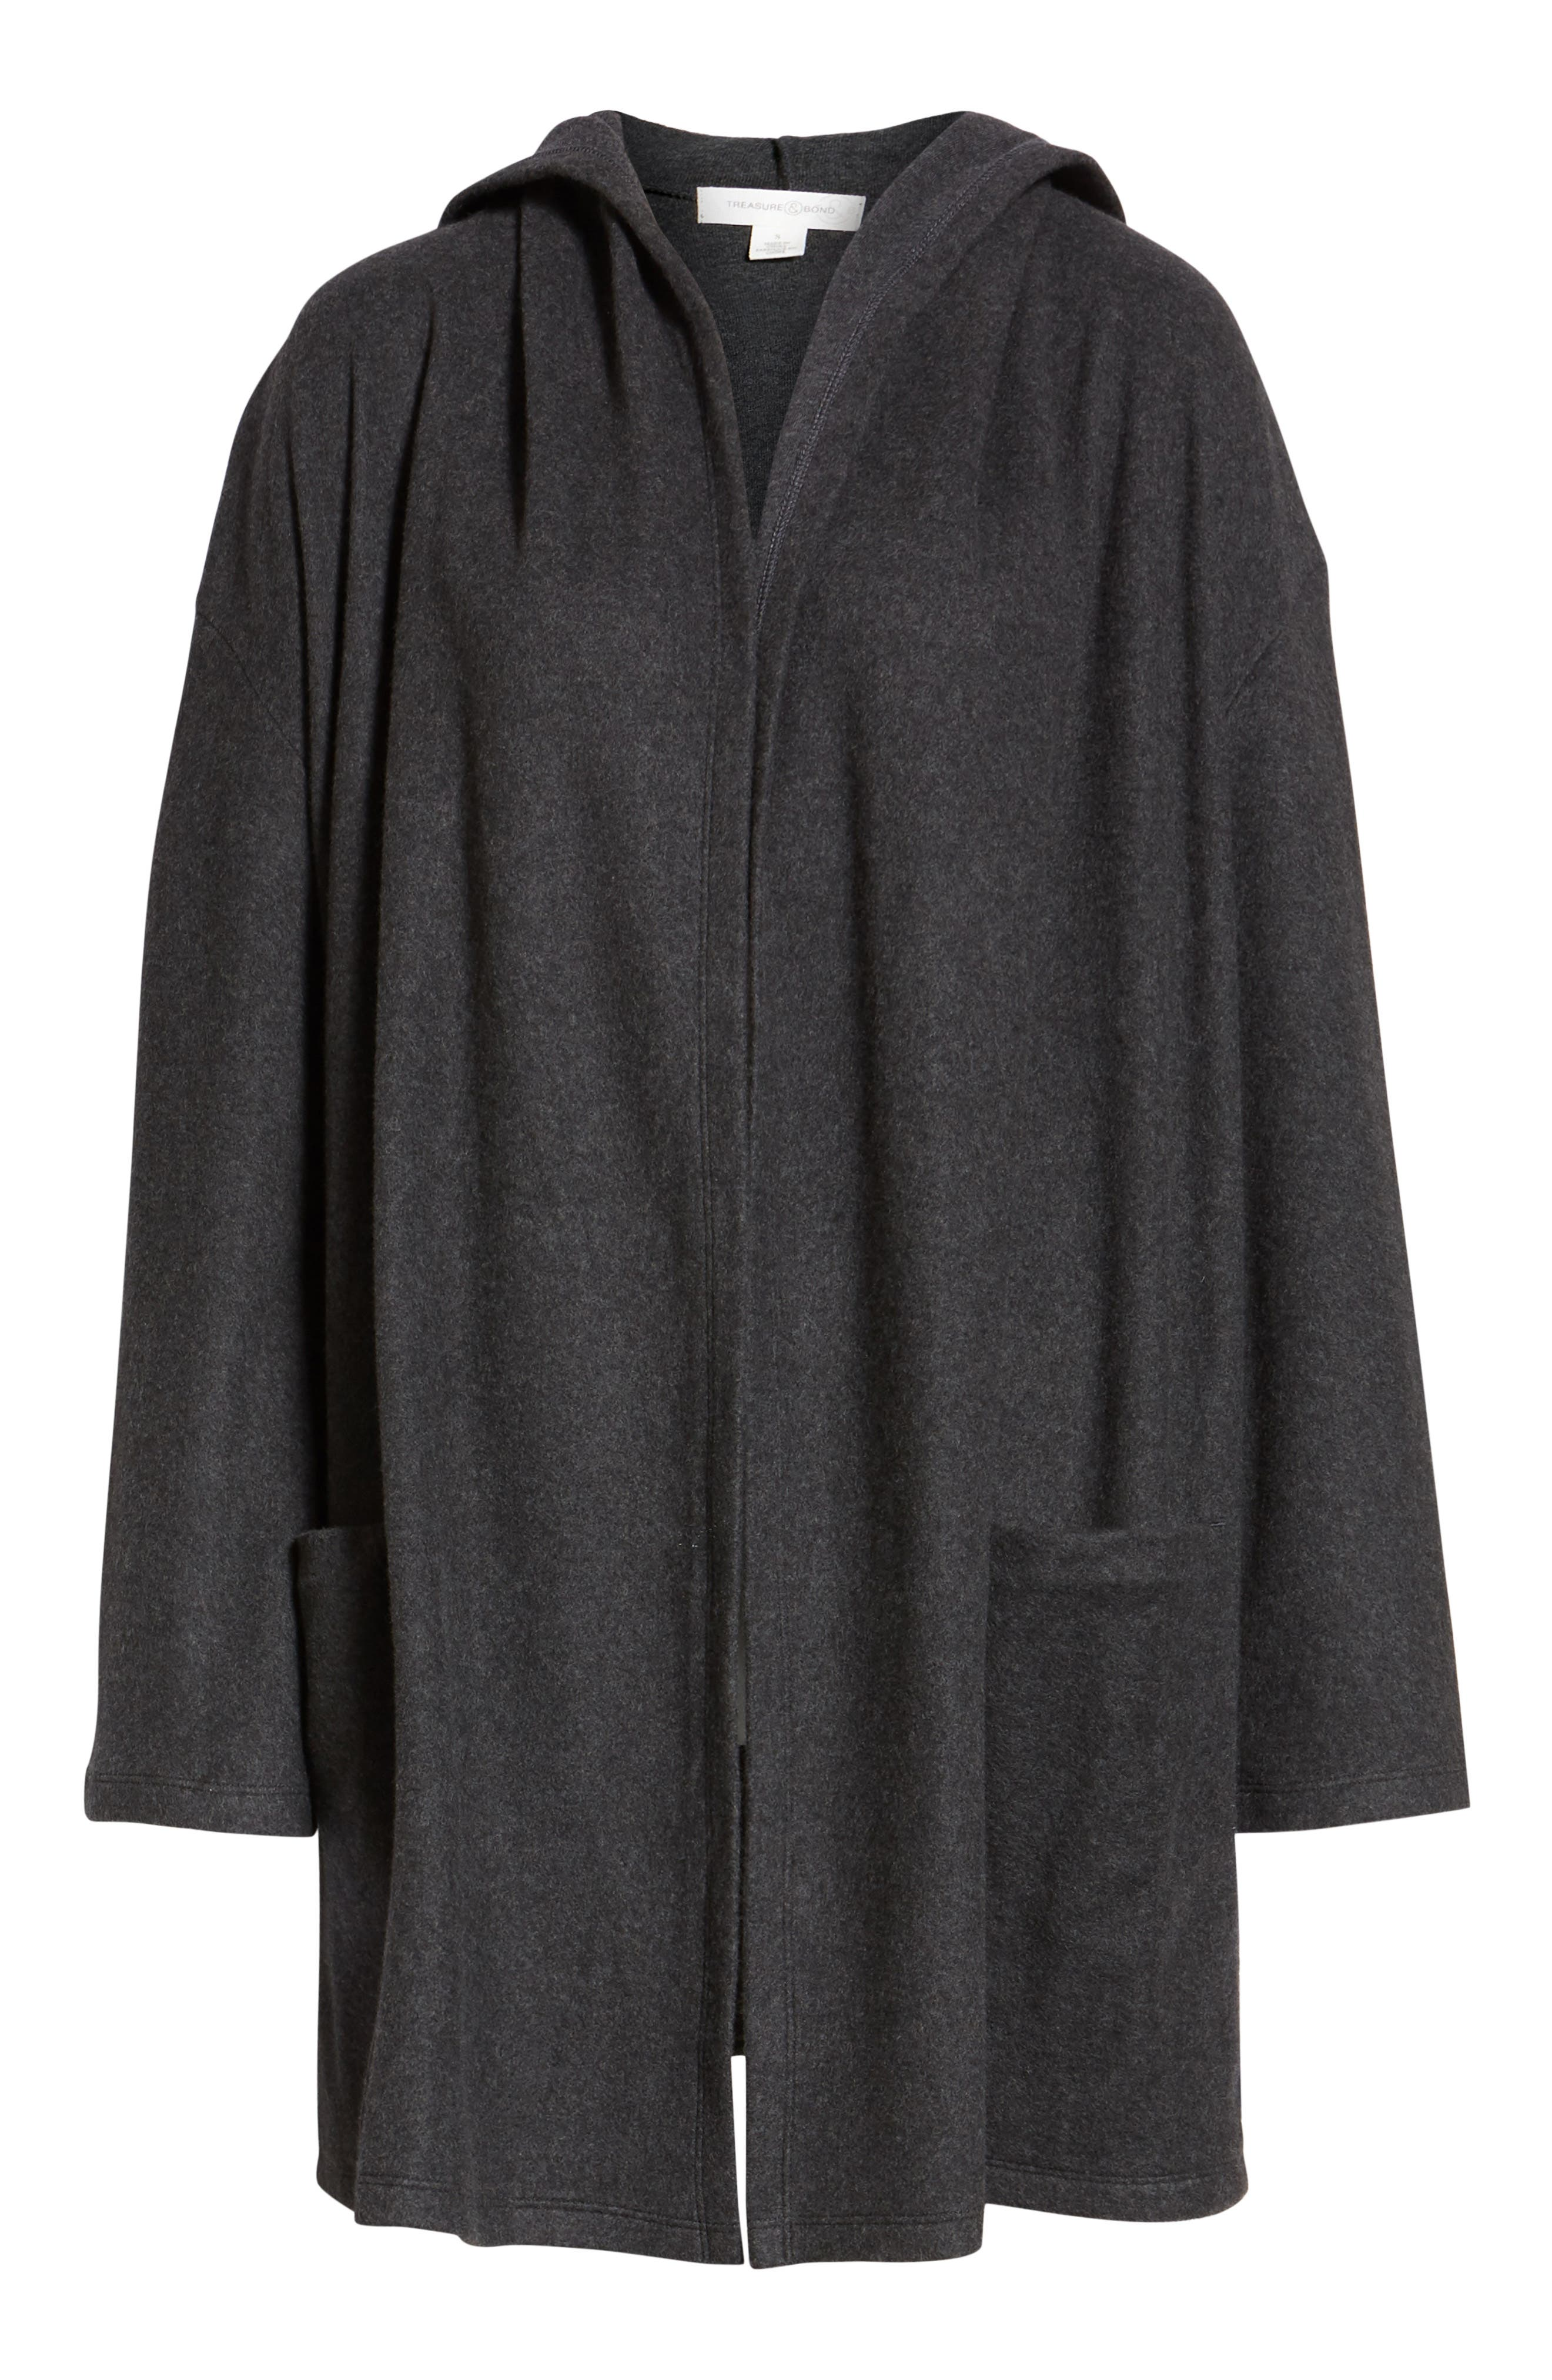 Hooded Open Front Cardigan,                             Alternate thumbnail 6, color,                             GREY DARK CHARCOAL HEATHER